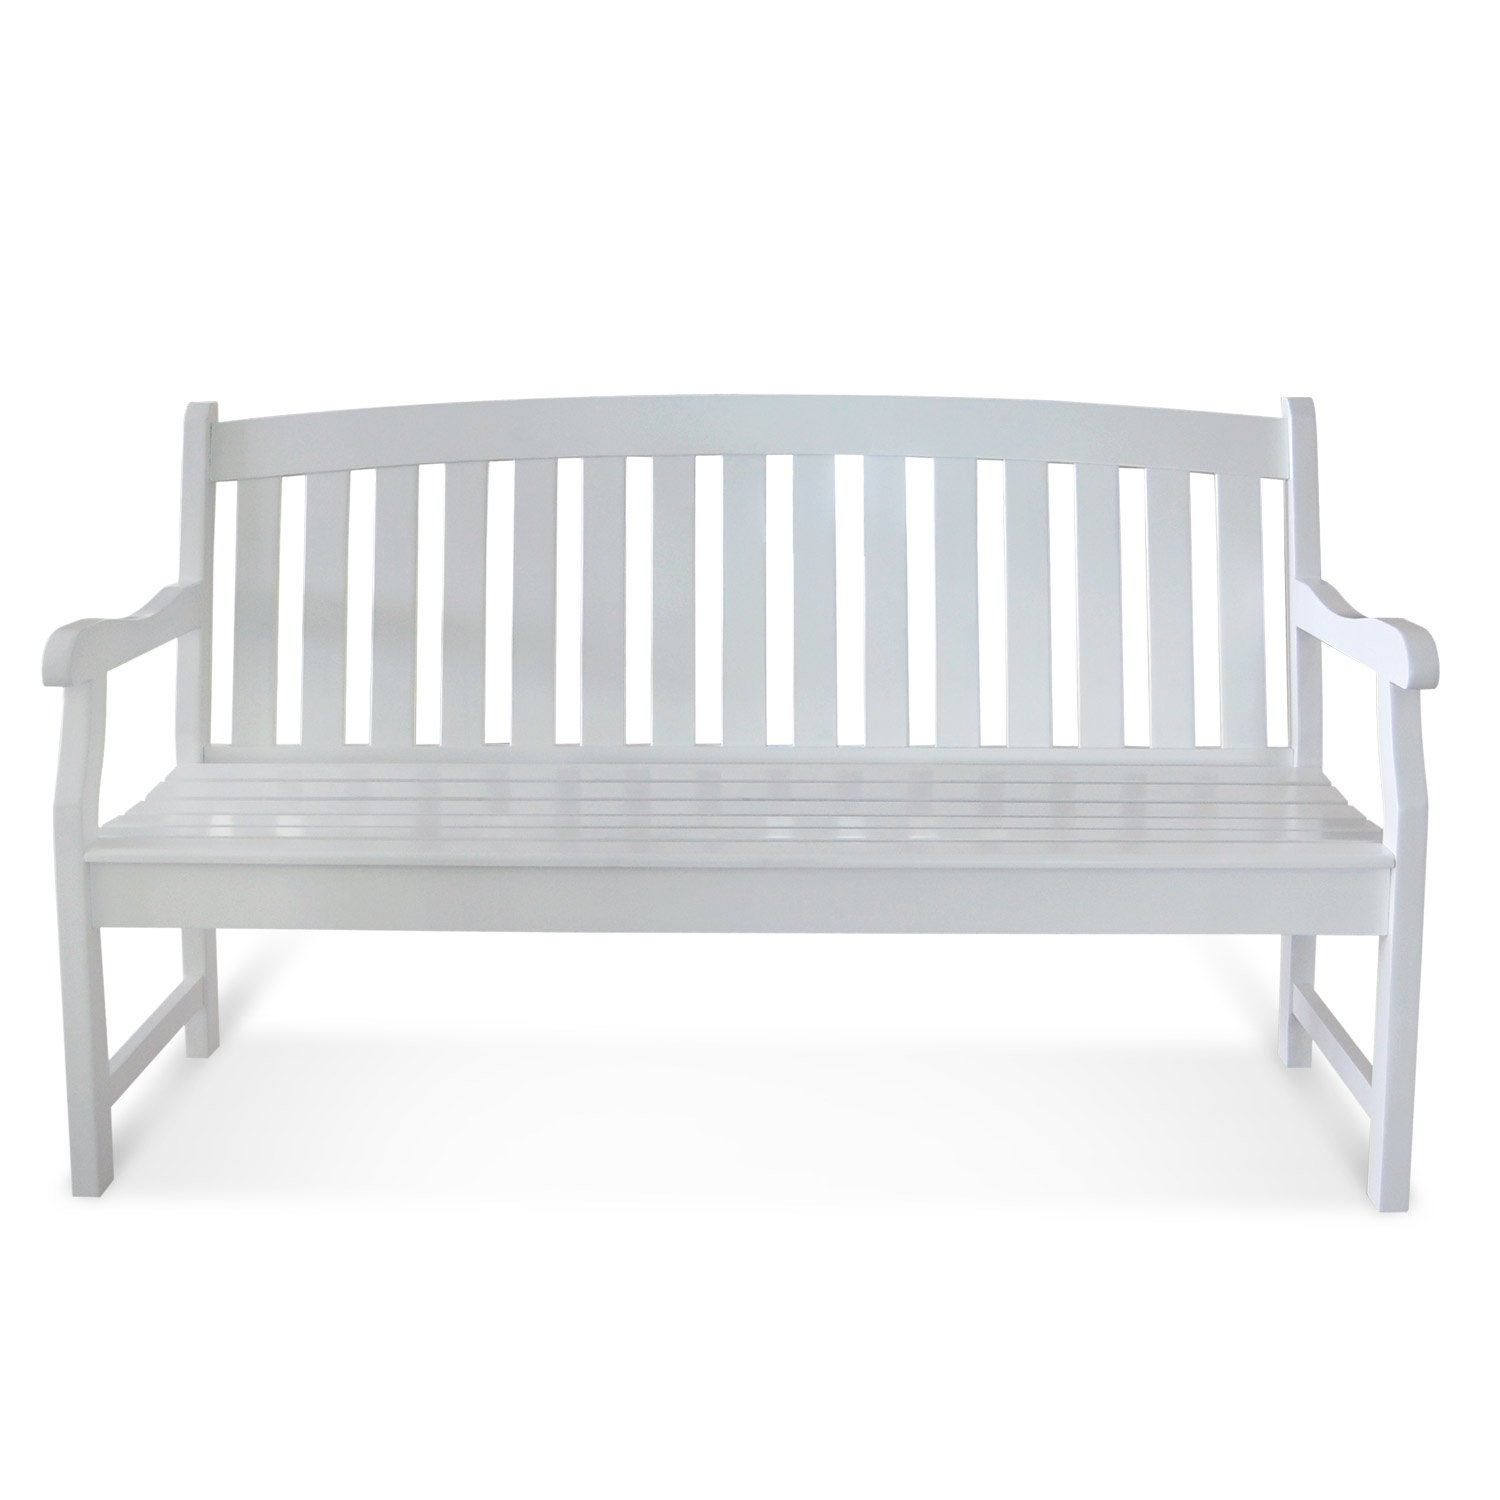 furniture garden bench rose alexander wooden new white broadfield acacia painted england